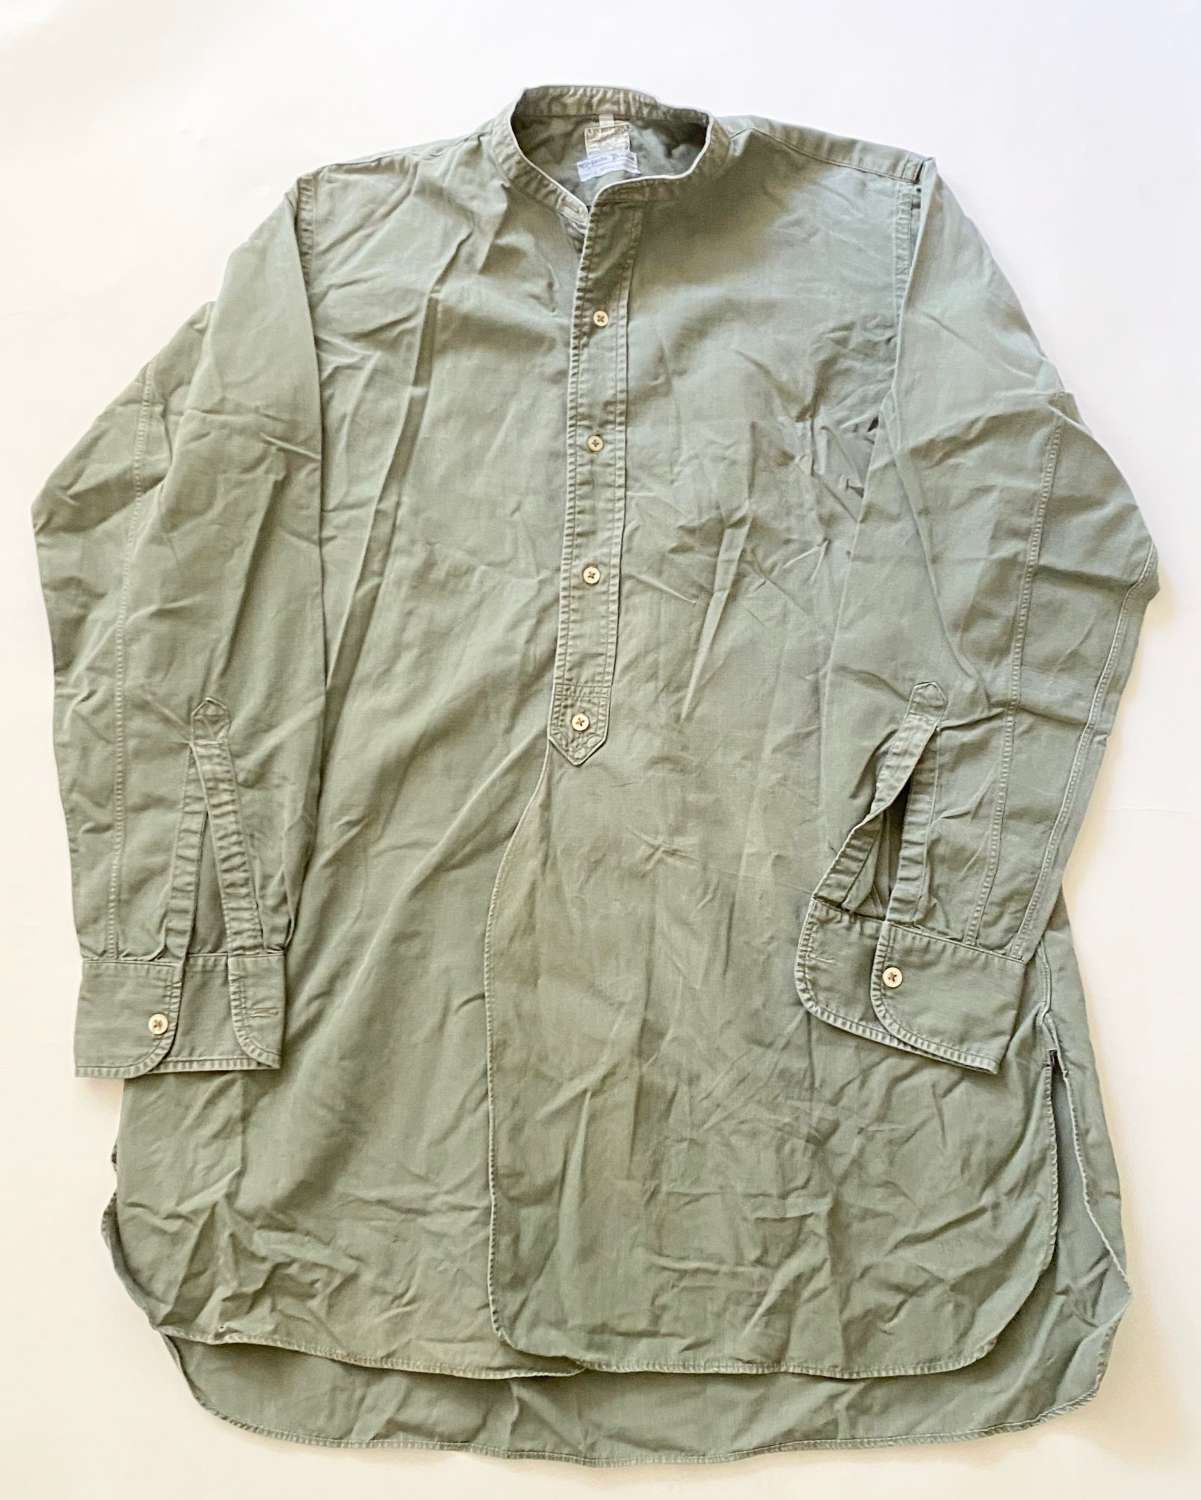 WW1 / WW2  Pattern British Army Officer's Shirt.